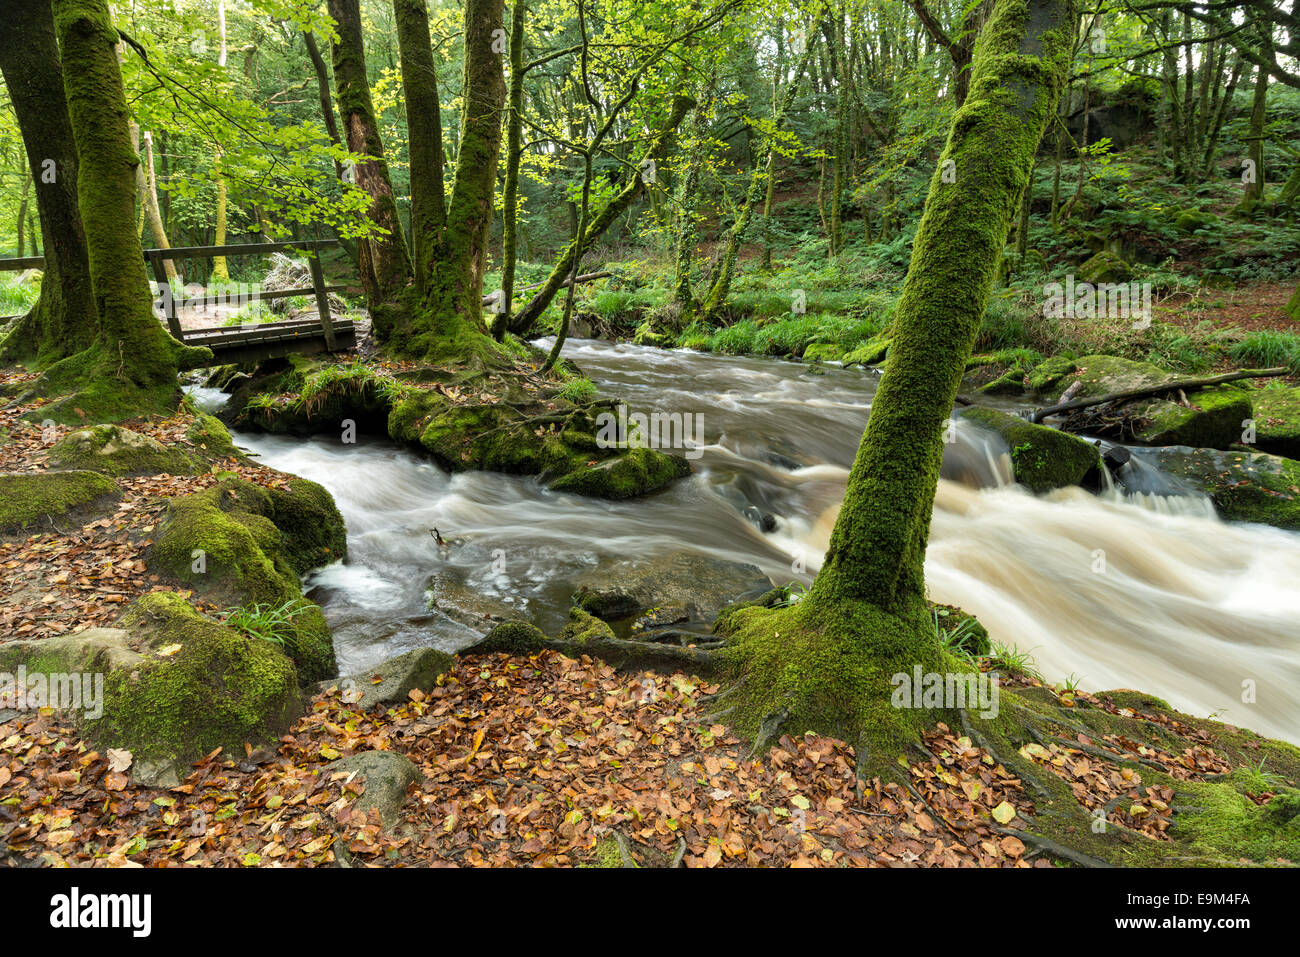 Mossy beech woodland and a fast flowing river at Golitha Falls in Cornwall - Stock Image